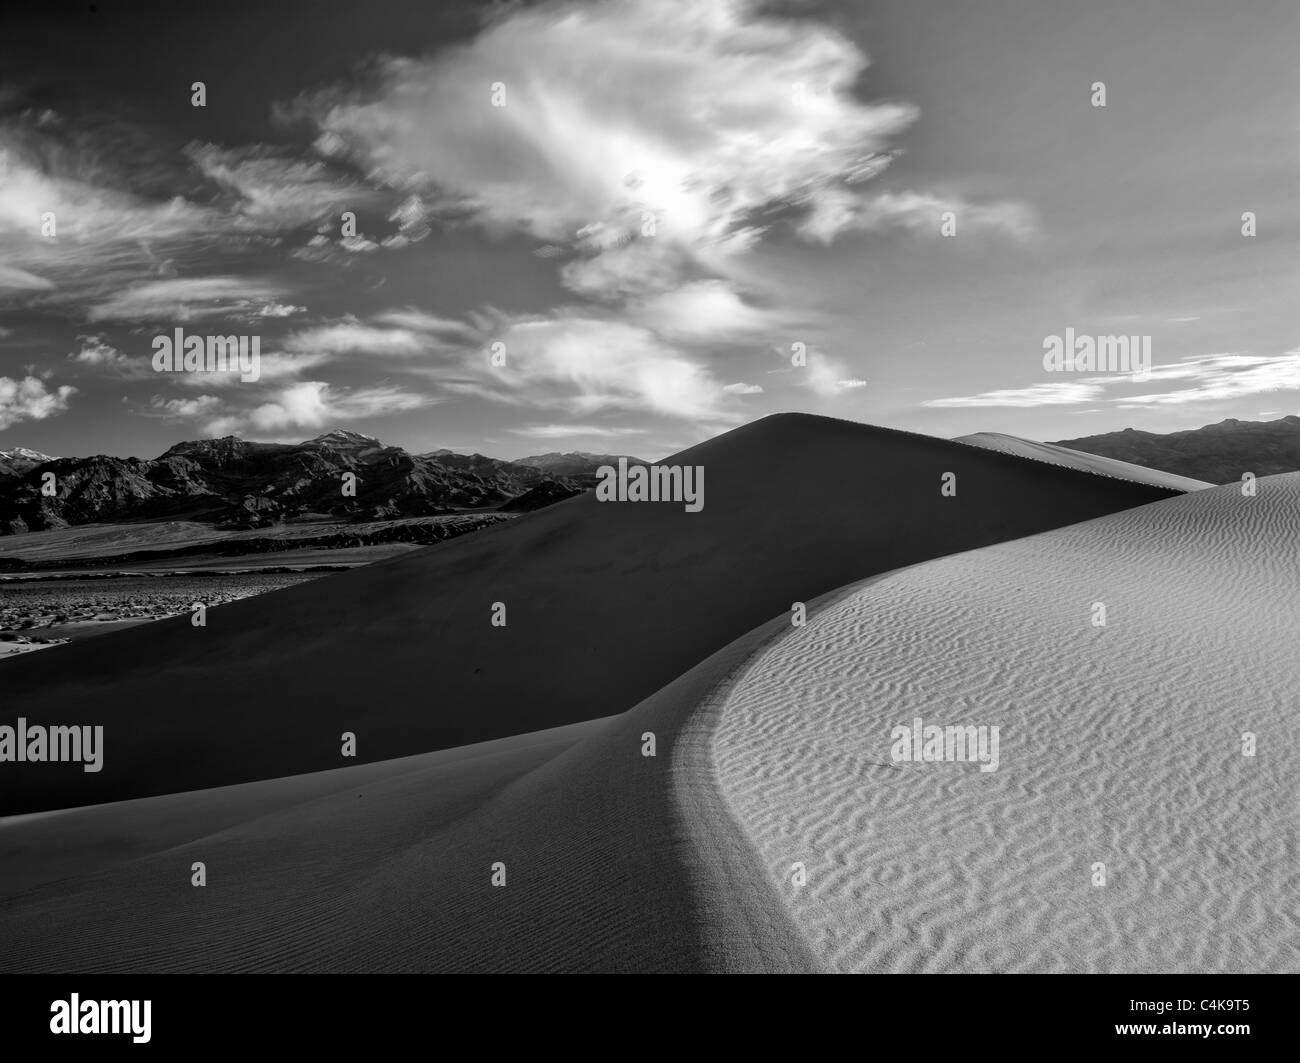 Clouds and sand dunes in Death Valley National Park, California - Stock Image